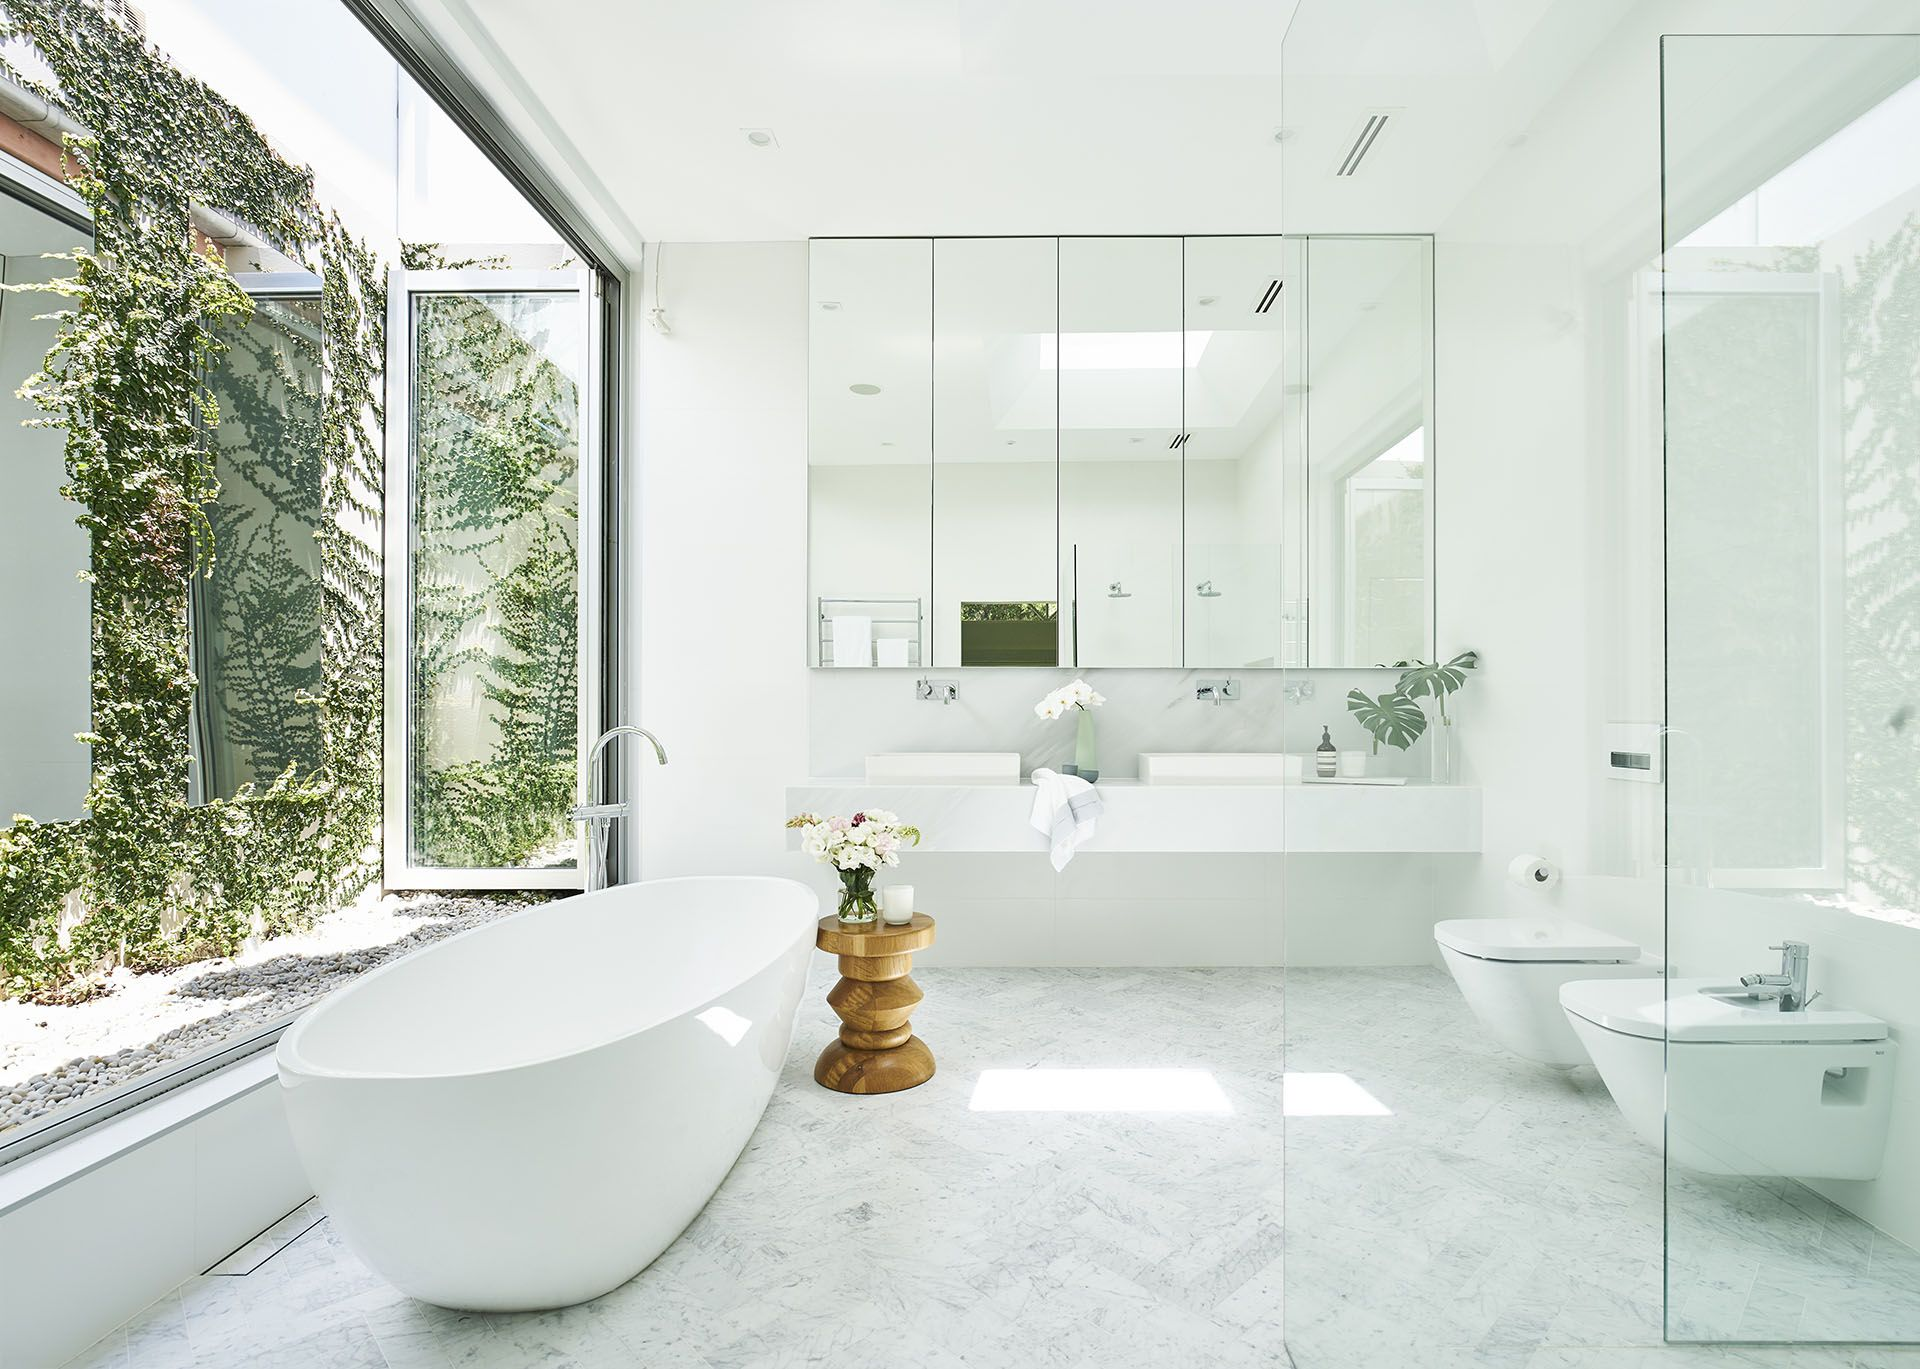 A White Bathroom With Its Own Courtyard | Marbles and House